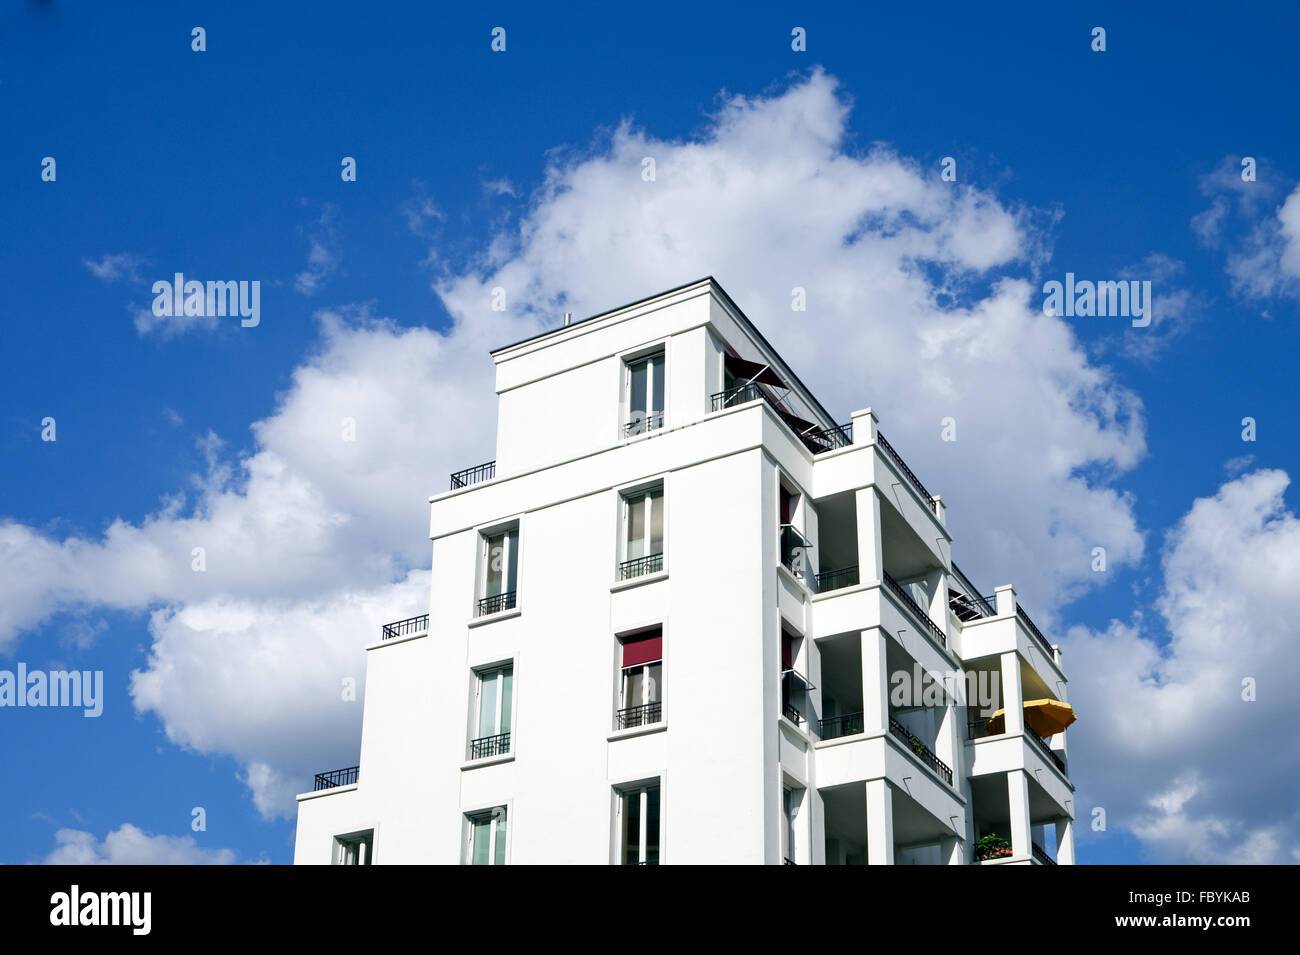 townhouse in Berlin - Stock Image